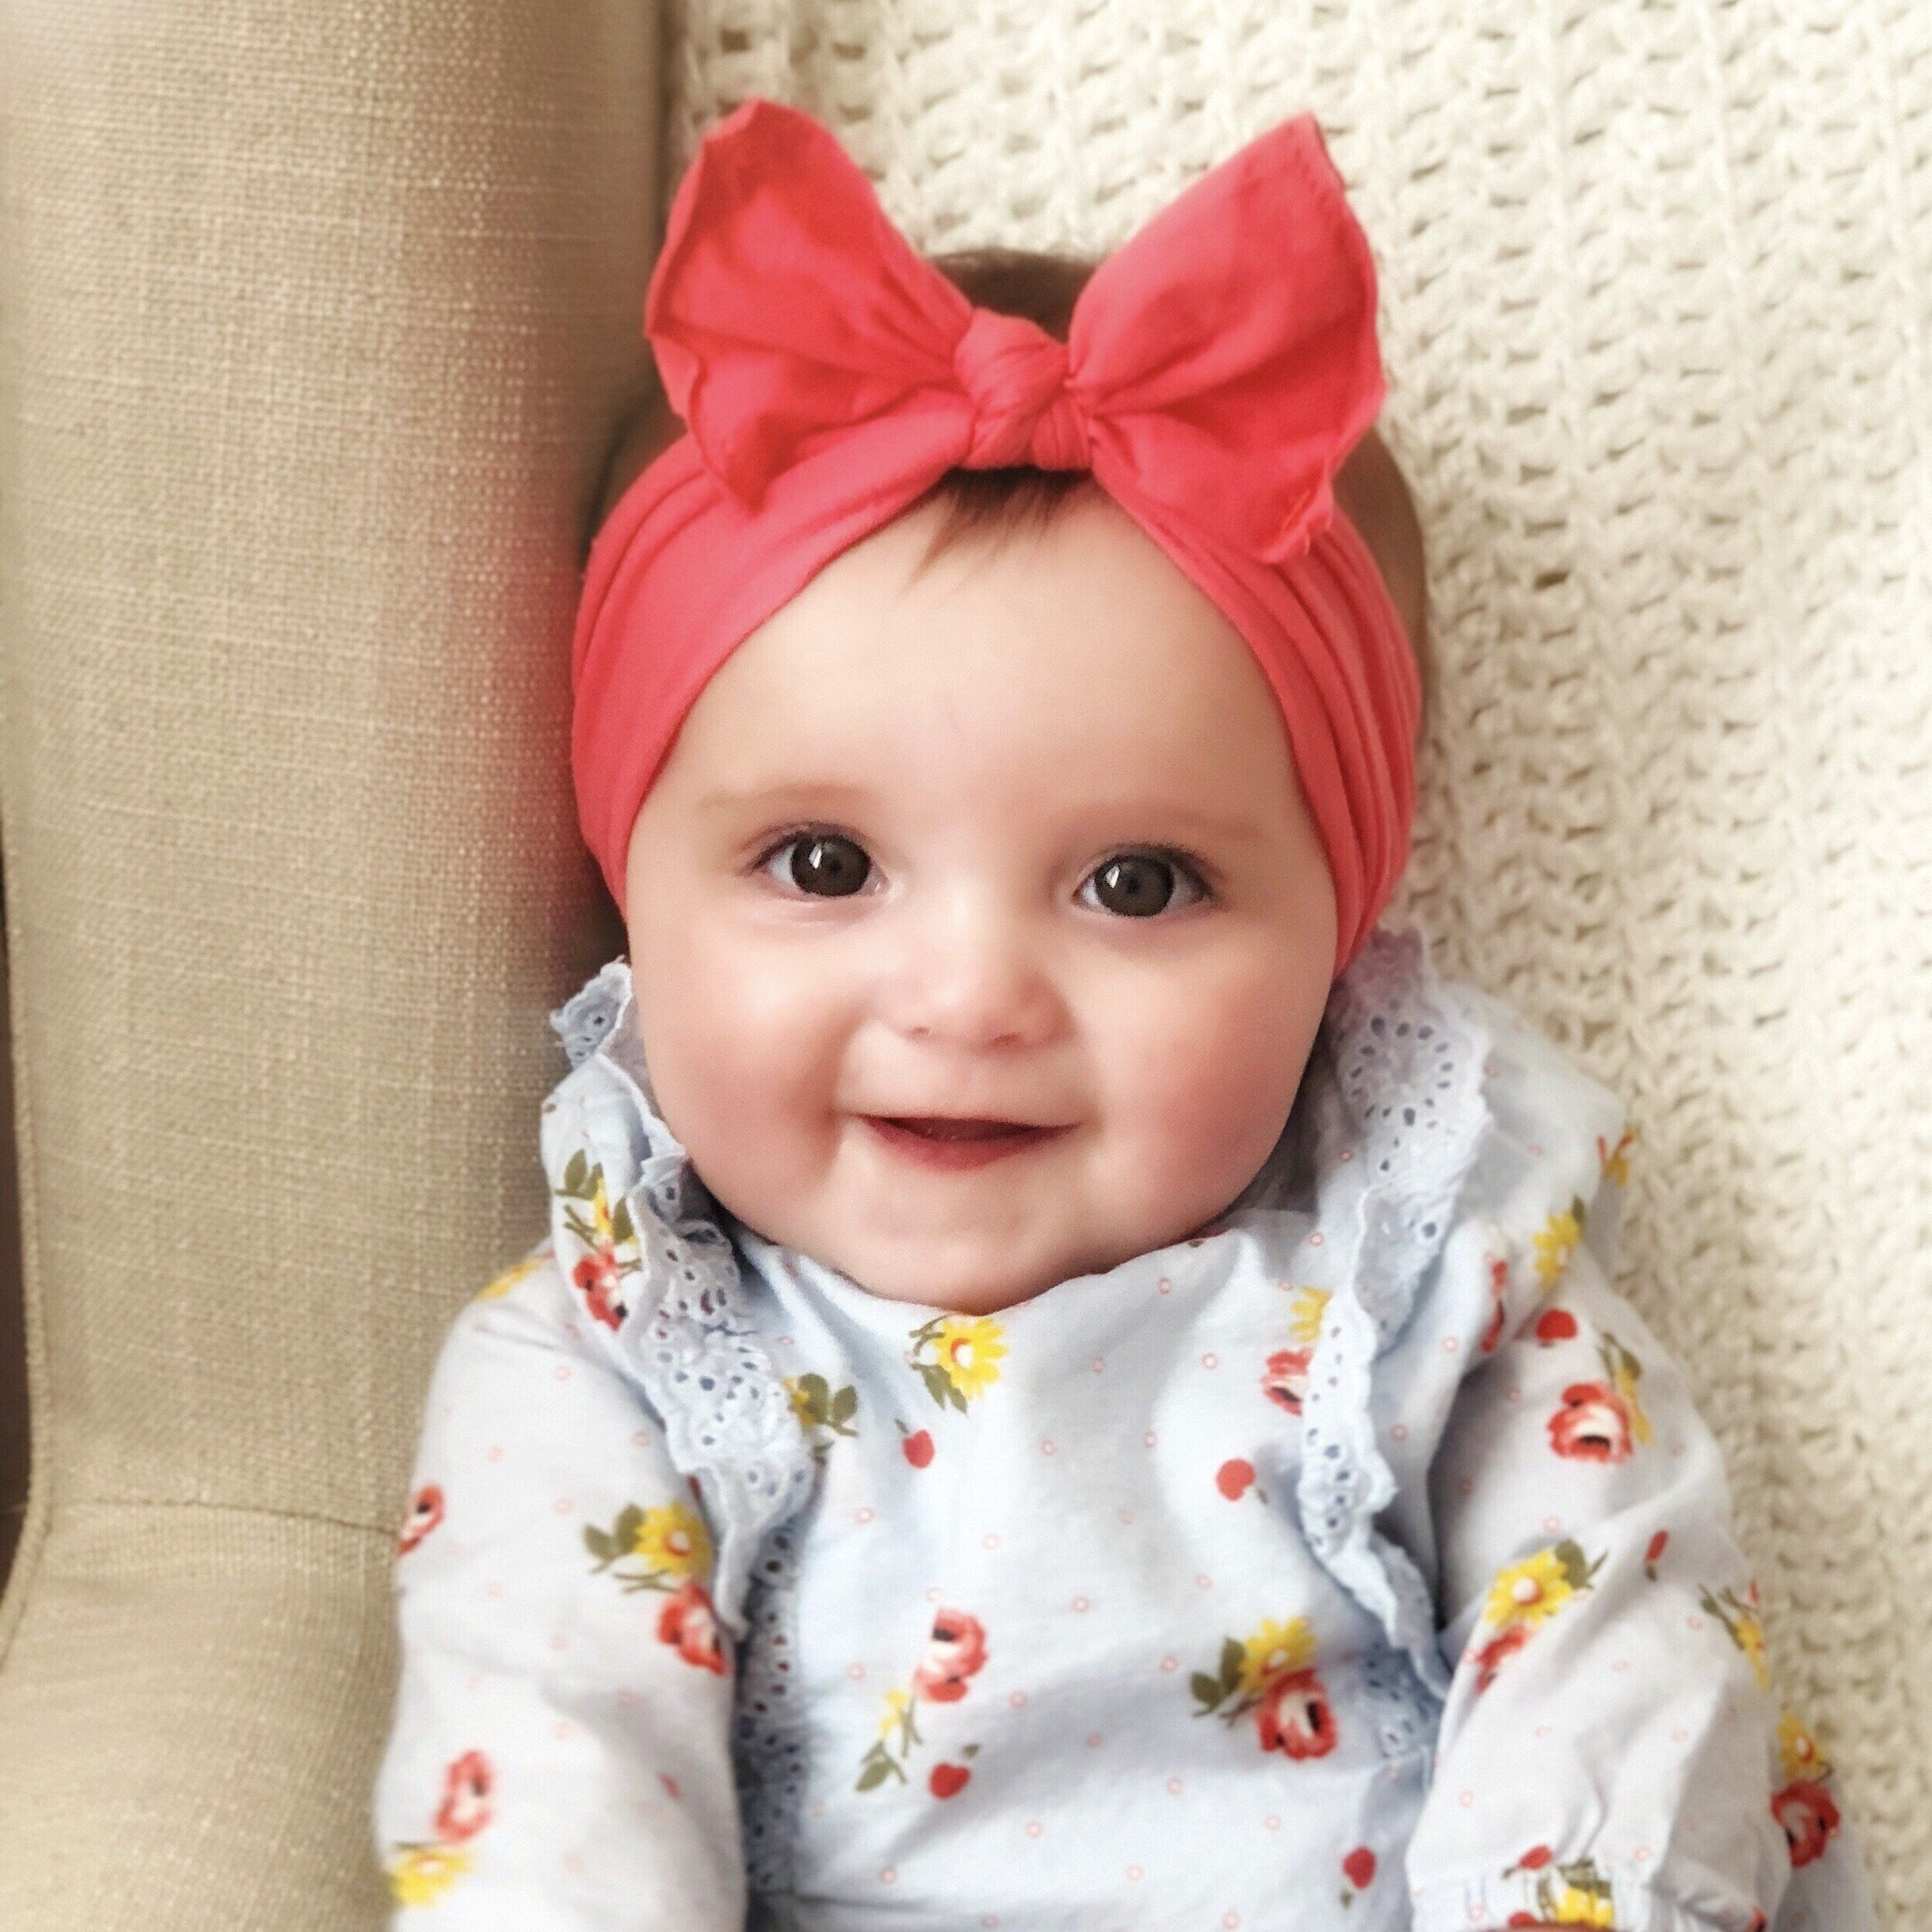 c9dc1154846 The cutest nylon headband for your sweet baby or little girl. These  headbands grow with baby and are the perfect accessory for any outfit.